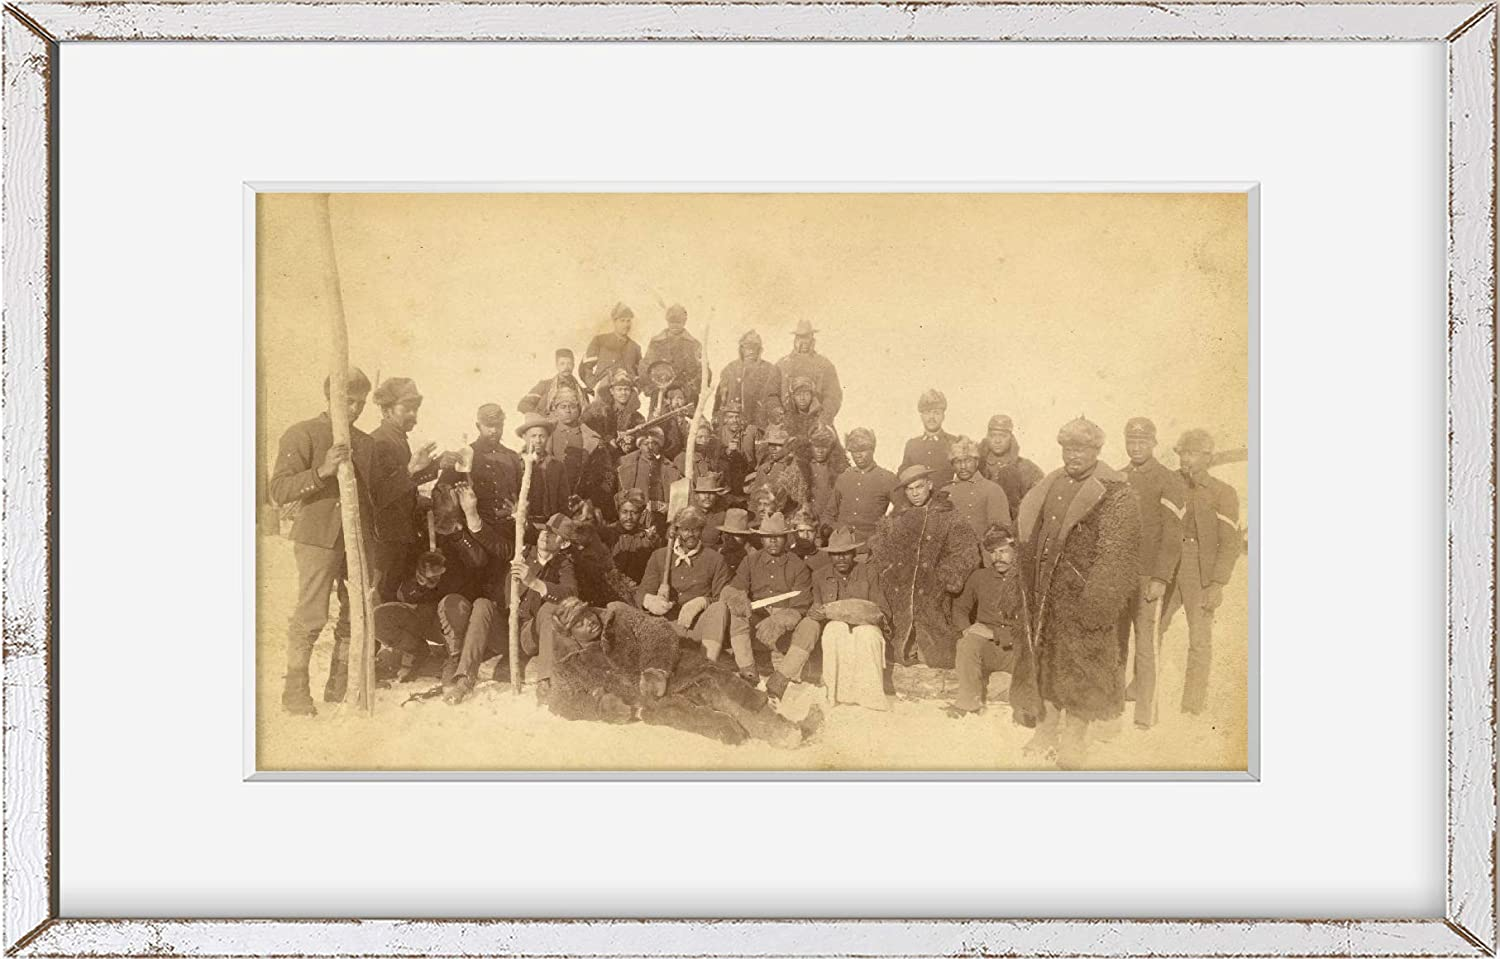 Fort Keogh // Chr Location: Fort Keogh Montana Barthelmess 1890 Photo Buffalo soldiers of the 25th Infantry, some wearing buffalo robes, Ft. Keogh, Montana Montana photographer